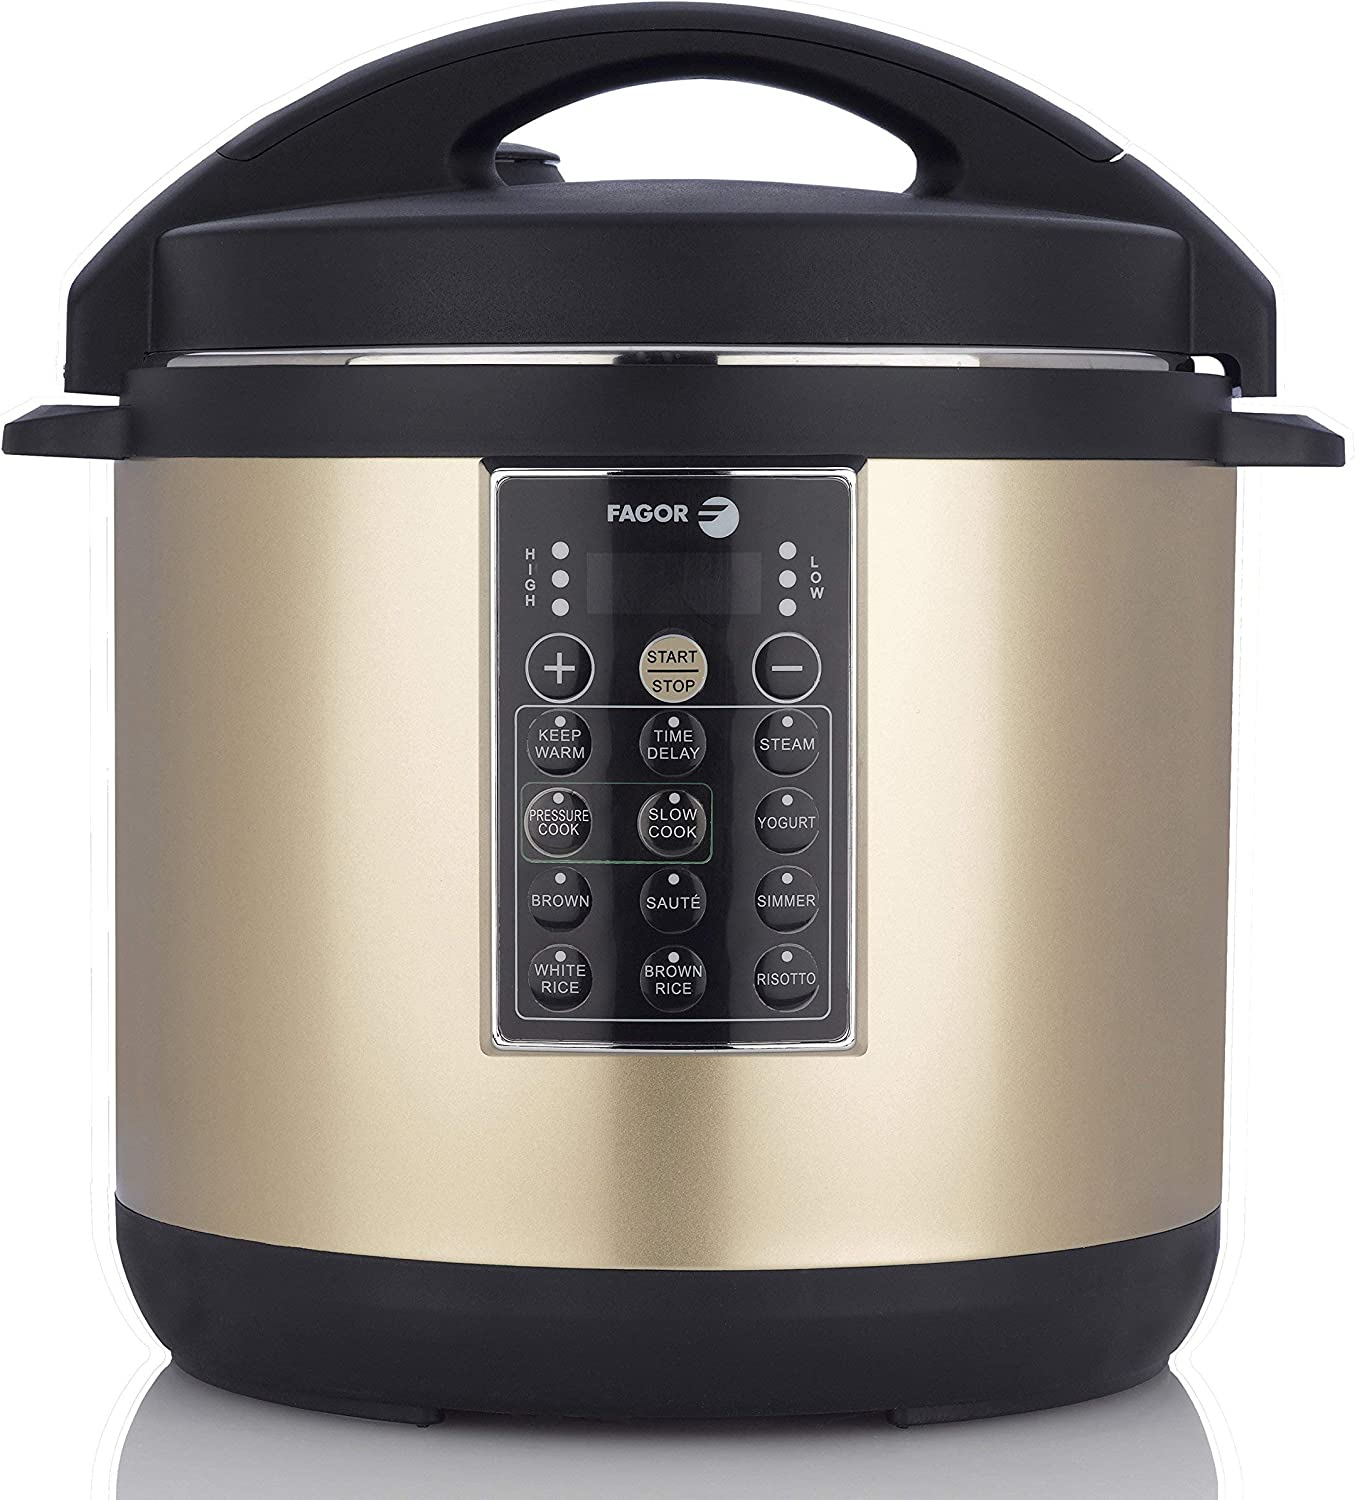 Fagor 935010054 Champagne LUX, 6QT Multicooker, 6 Quart (Renewed)